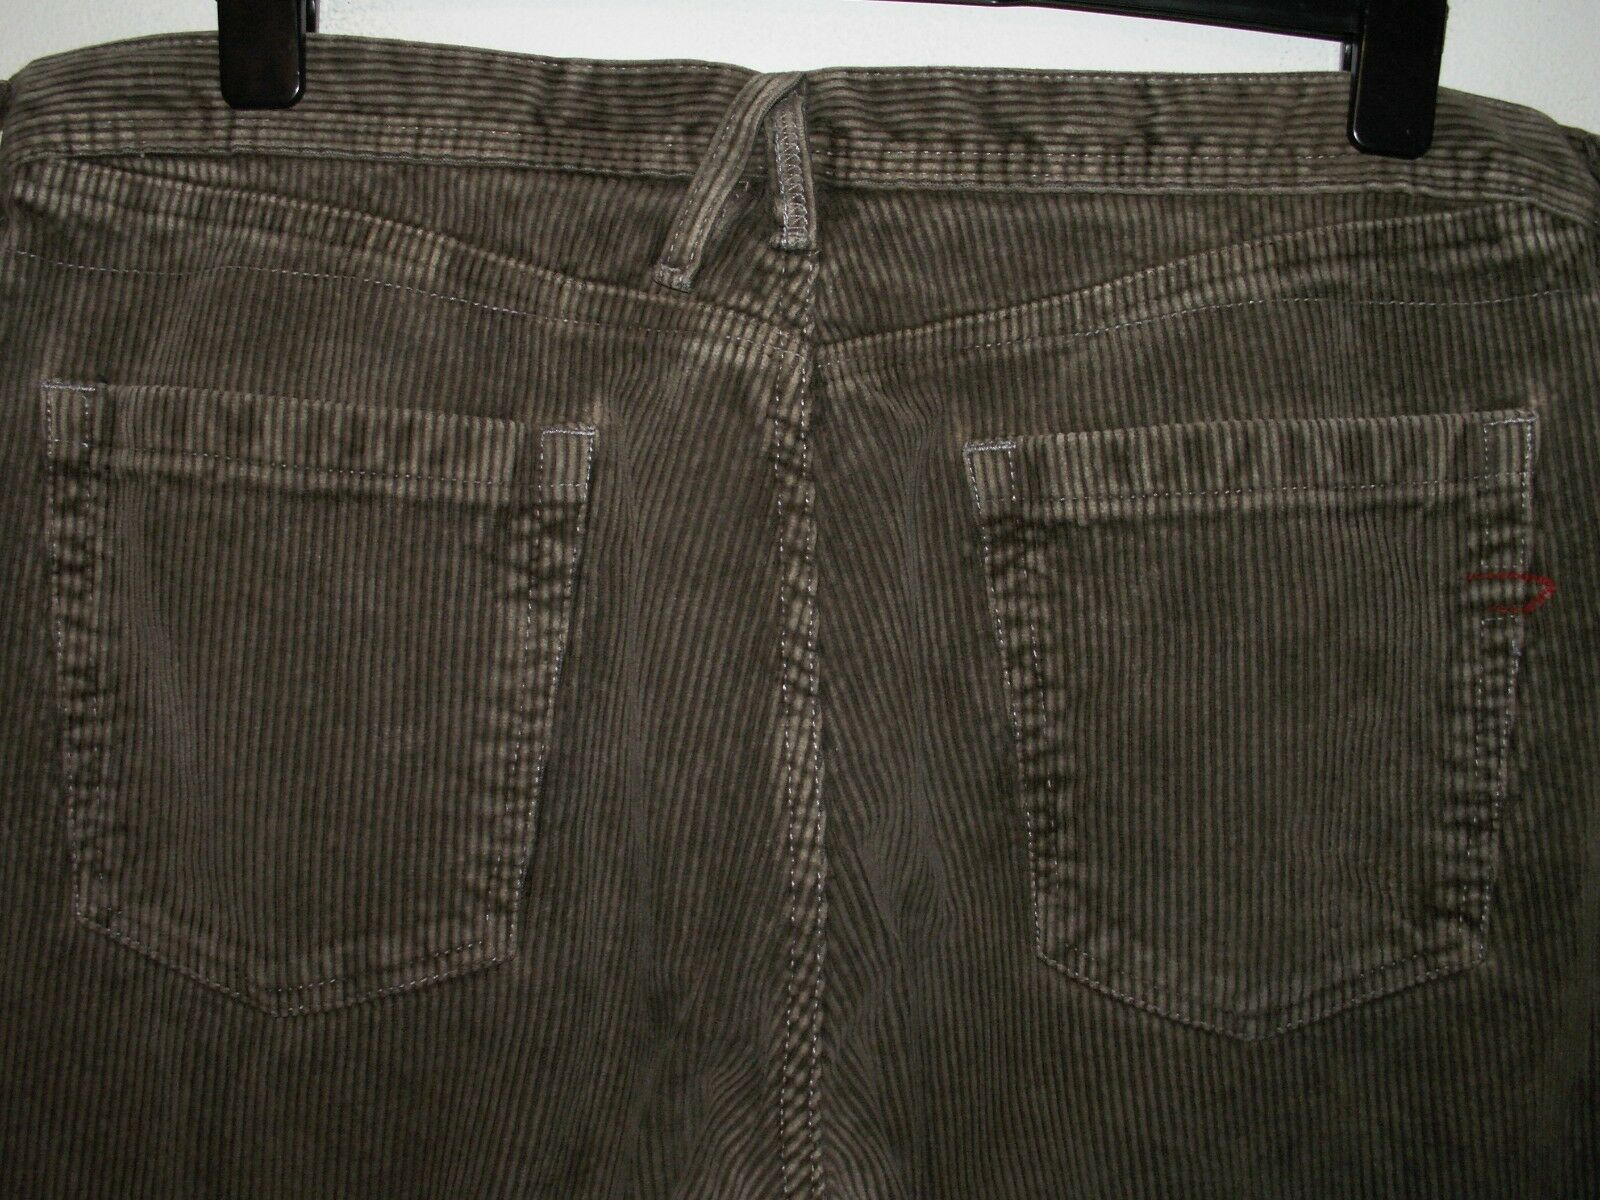 Diesel cords corduroy trousers jeans comfort loose fit W36 L32 (a4237)